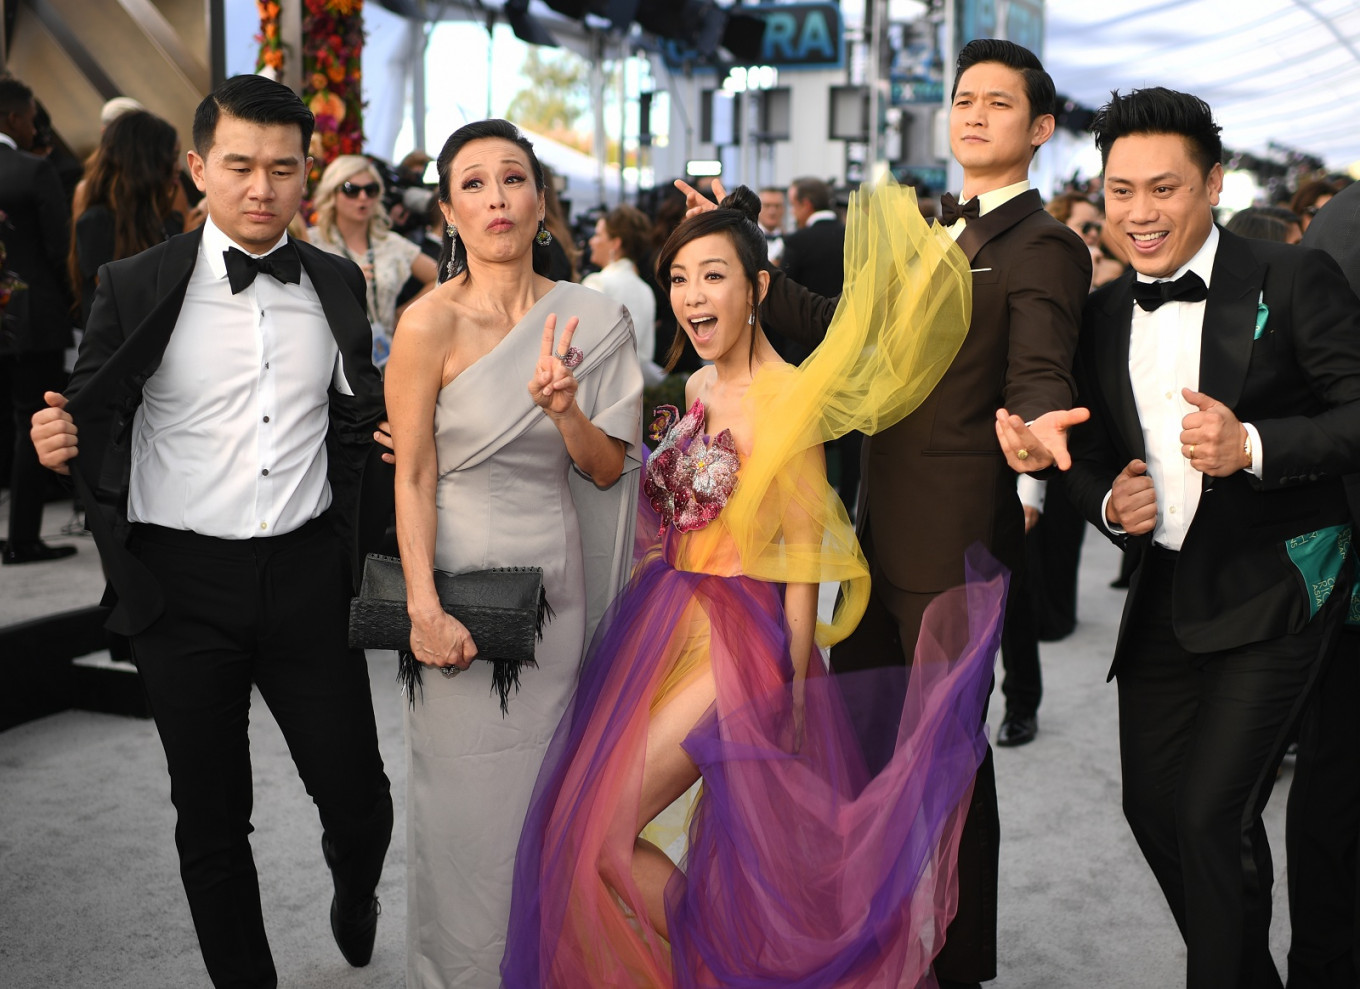 'Crazy Rich Asians' actors slam 'People' for identity mix-up